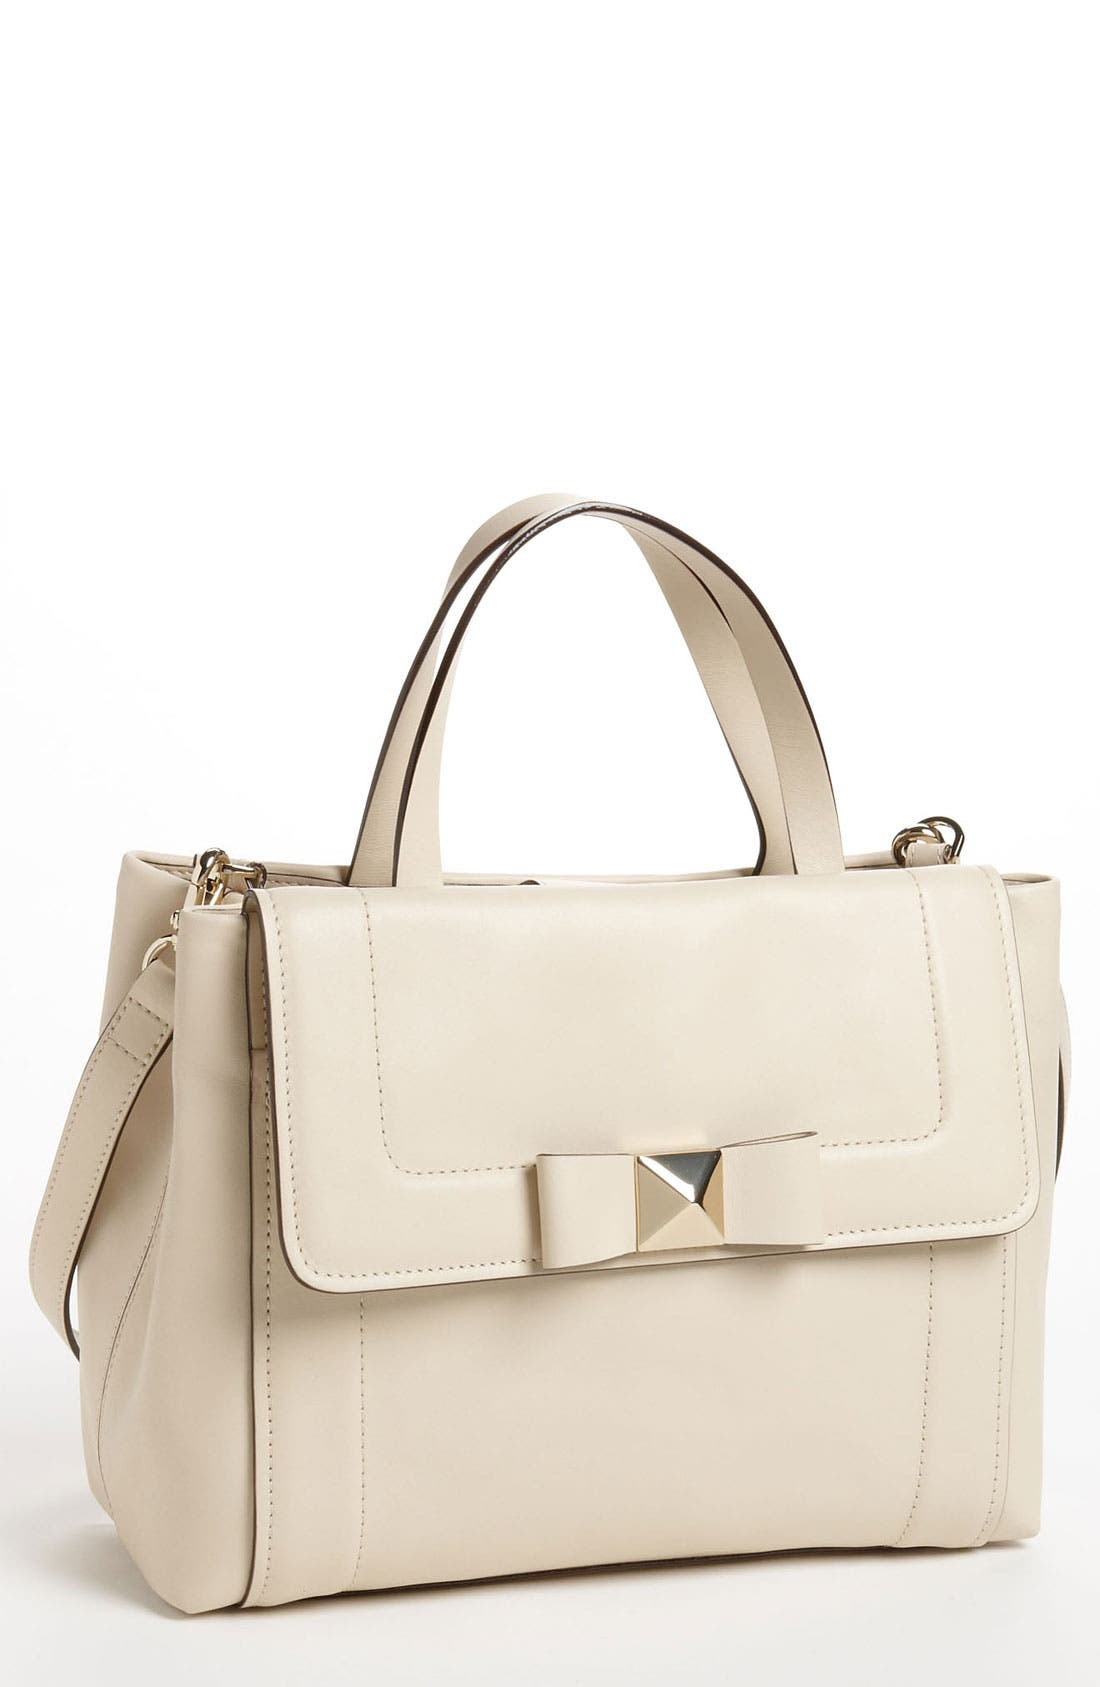 Main Image - kate spade new york 'bow terrace - bradshaw' satchel, medium